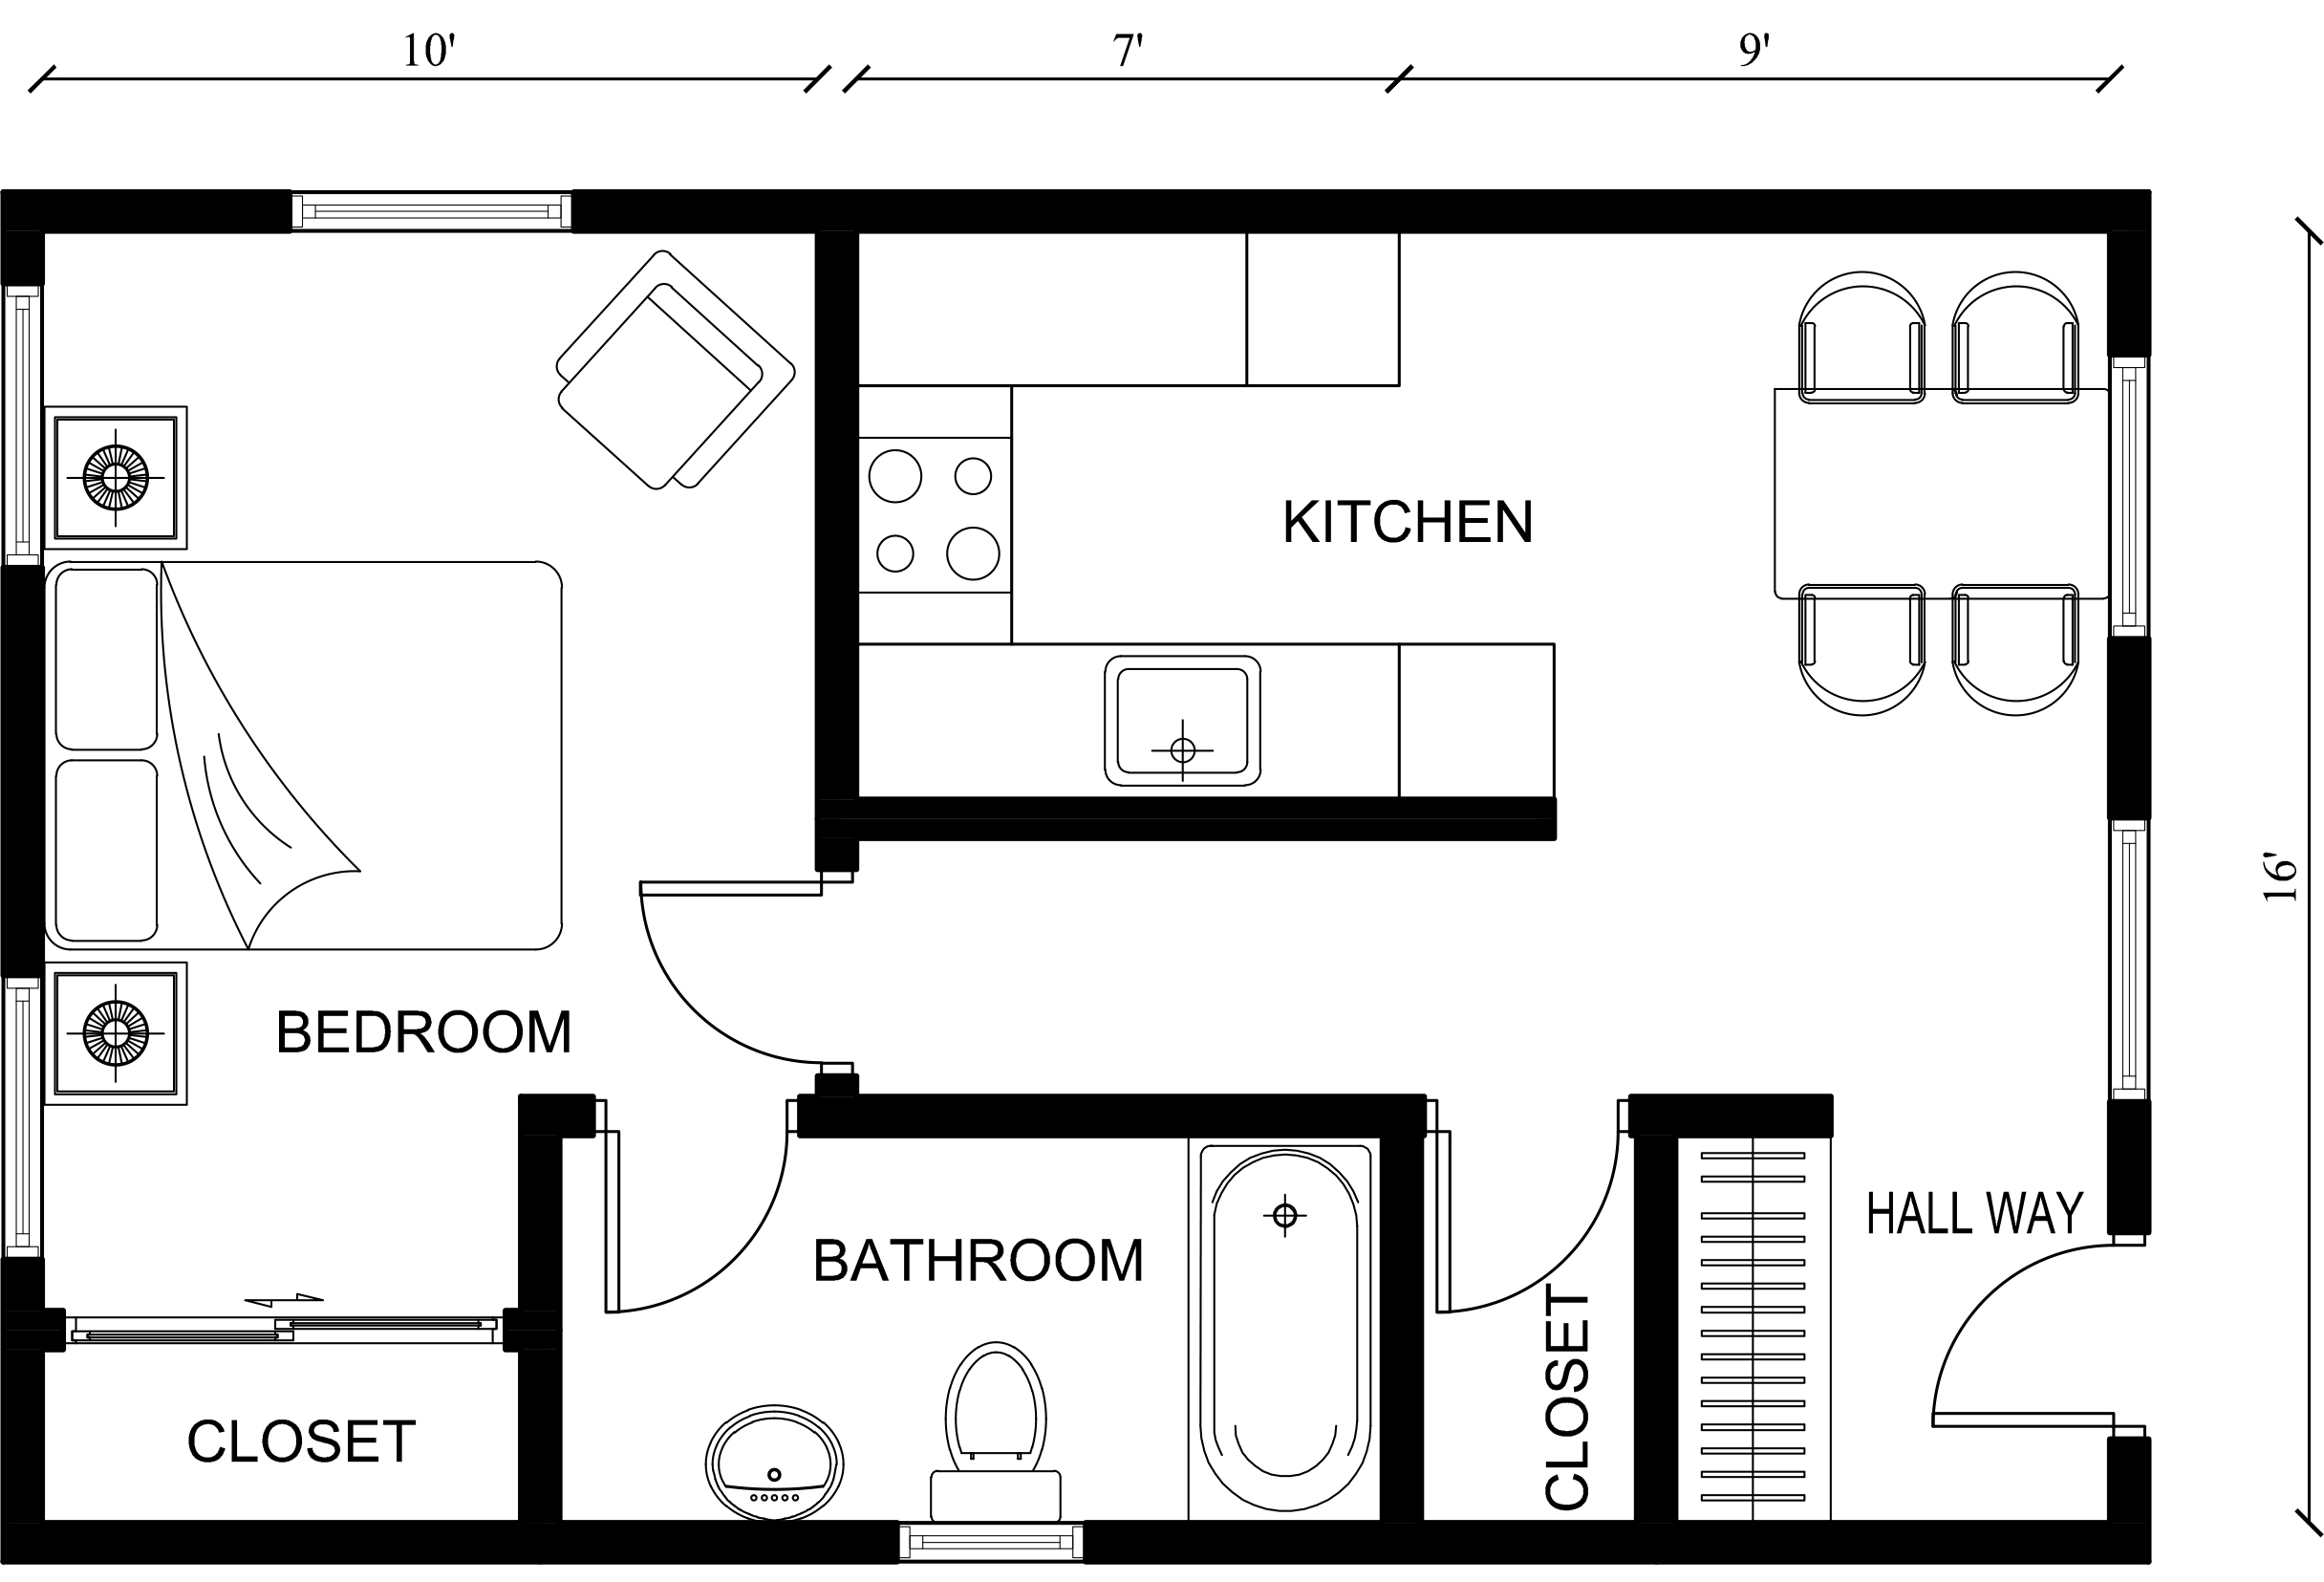 1 bedroom (King Arthur)